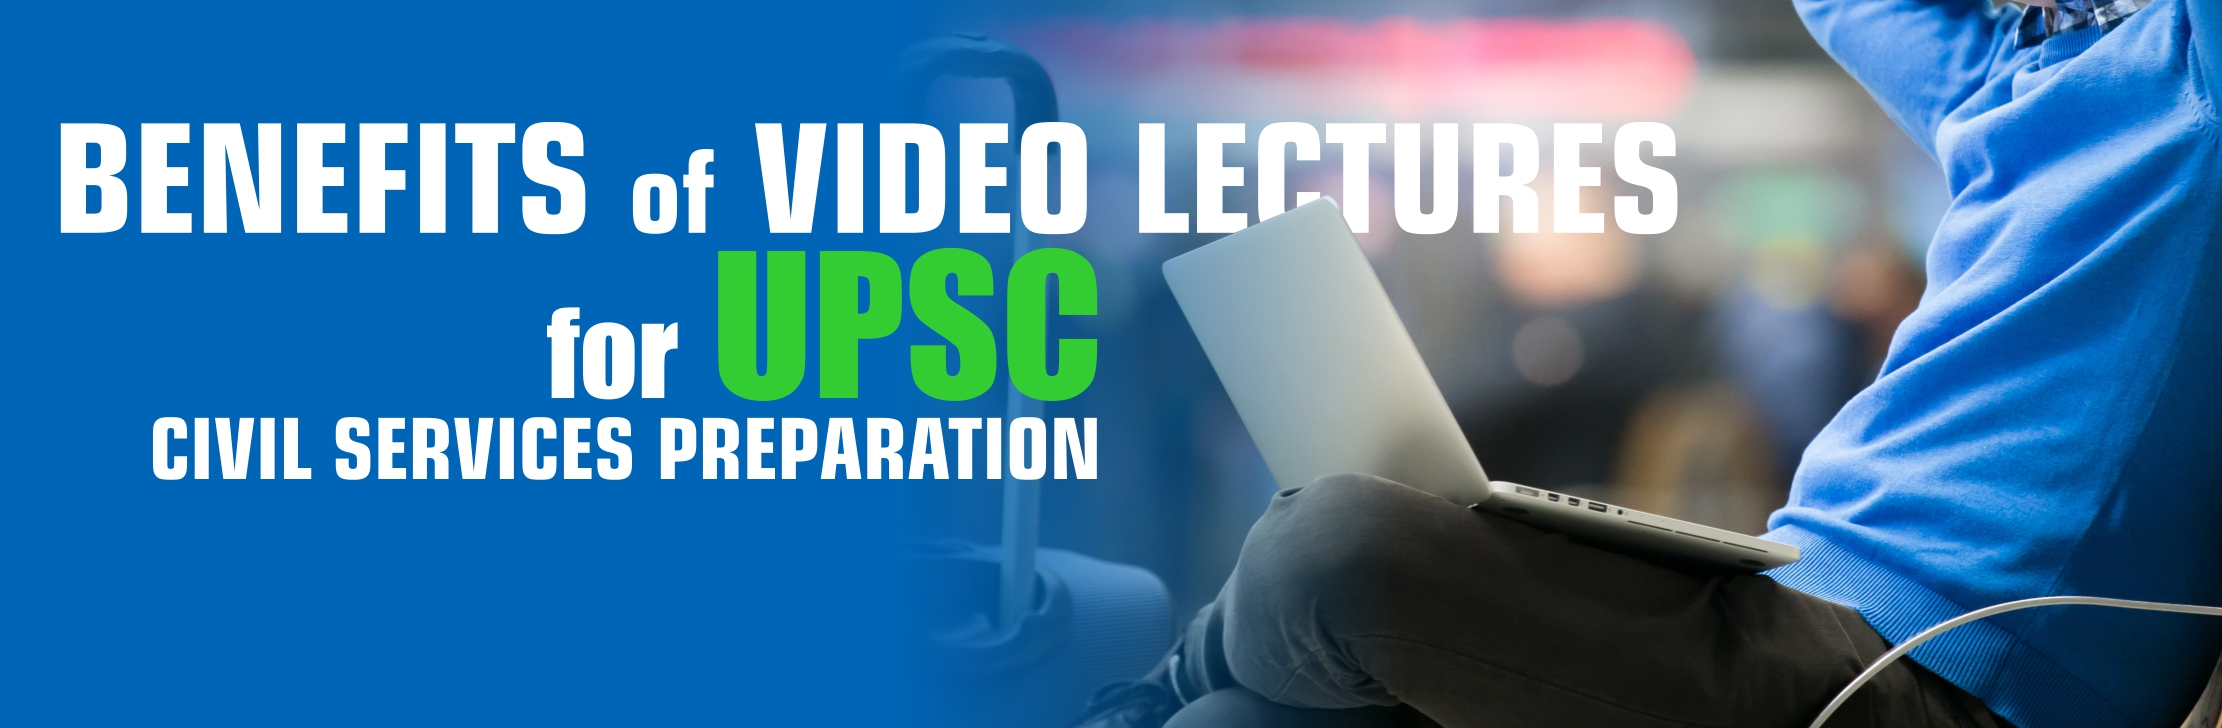 Benefits-of-Video-Lectures-for-UPSC-Civil-Services-Preparation